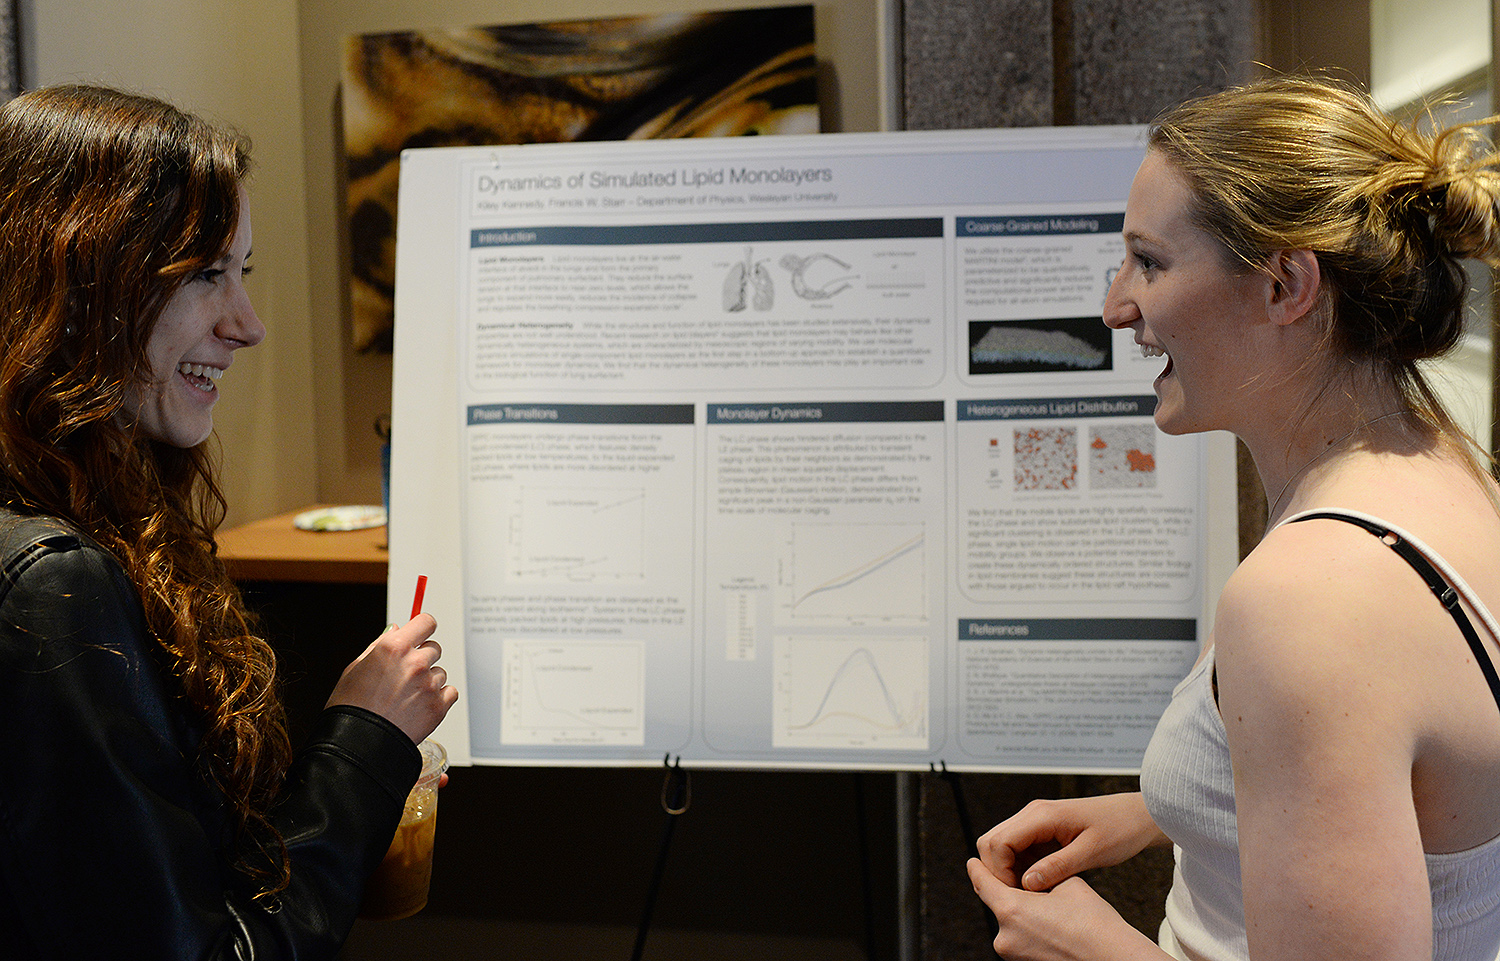 "Kiley Kennedy '16 exhibited her research ""Dynamics of Simulated Lipid Monolayers."" Francis Starr, director of the College of Integrated Sciences, professor of physics, served as her faculty advisor."